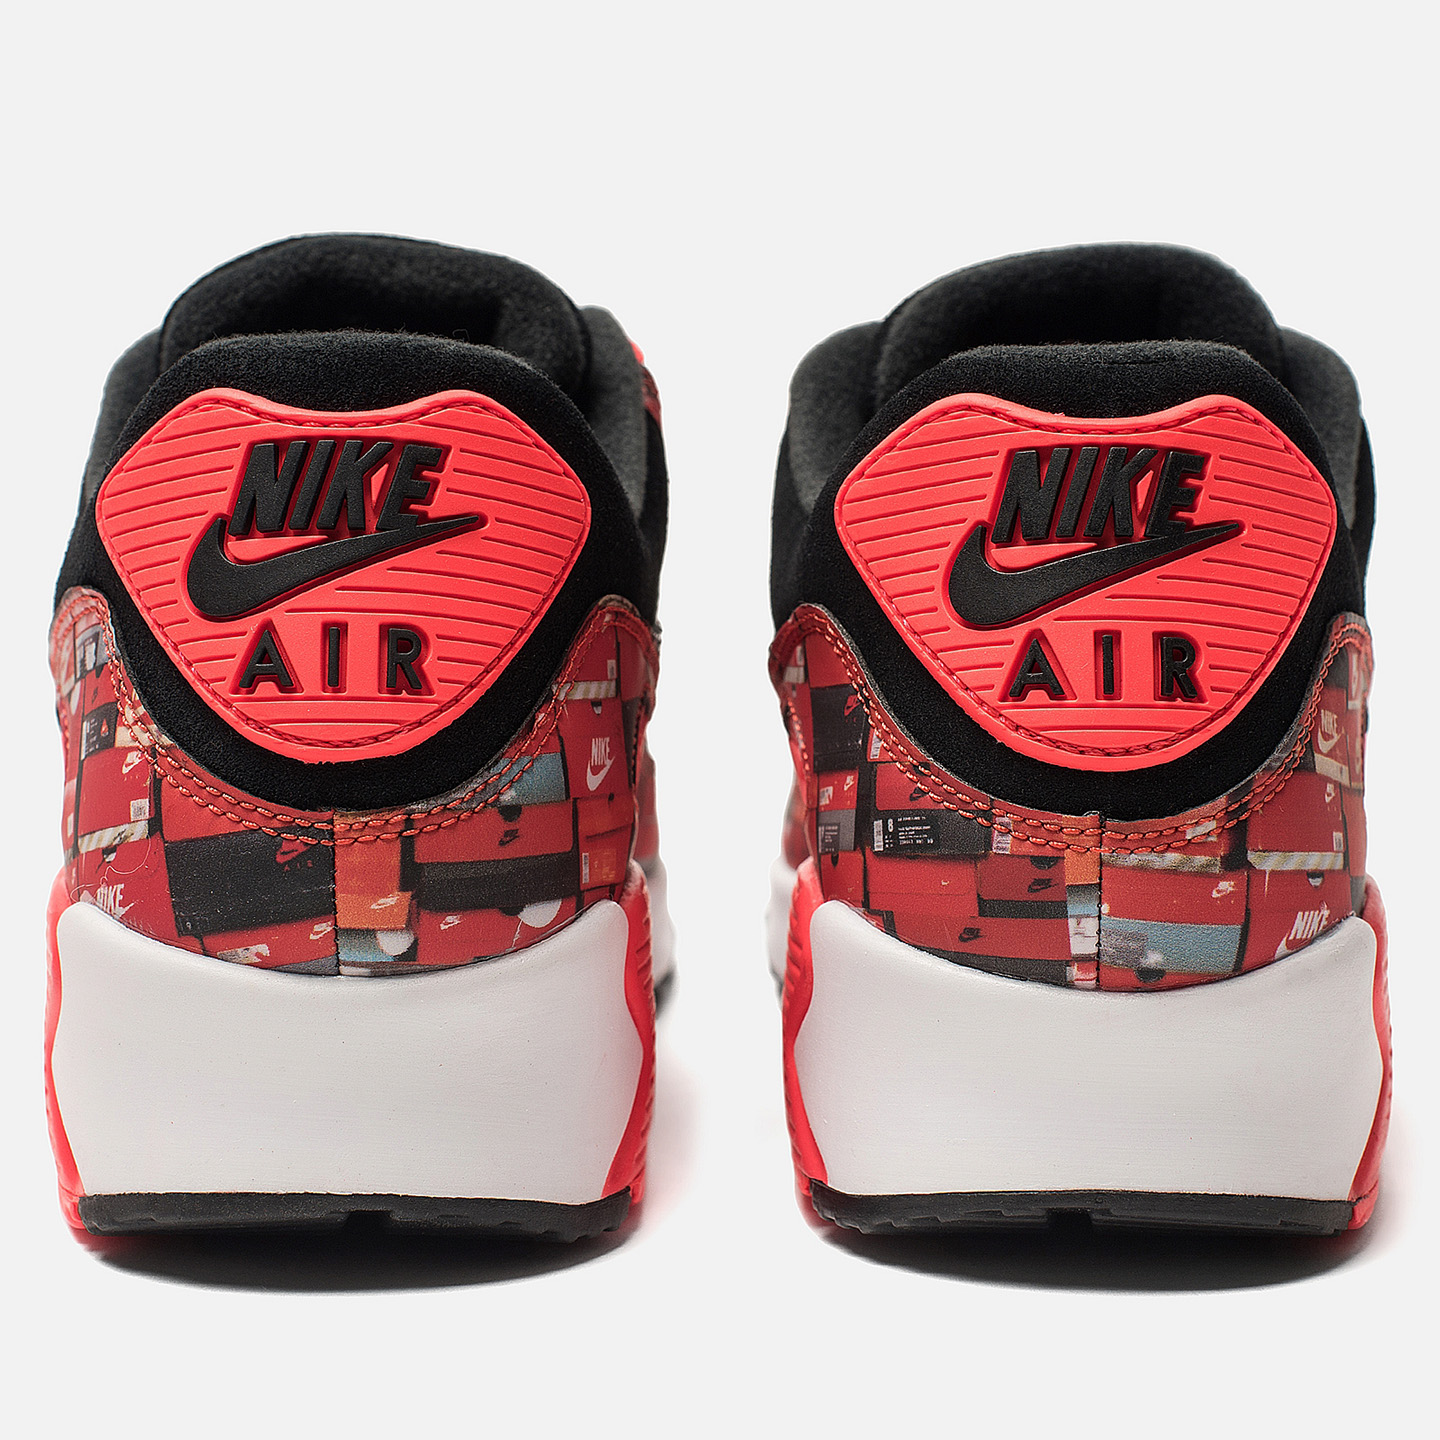 a52a6551 Кроссовки x atmos Air Max 90 We Love Nike Pack Black/Bright Crimson ...